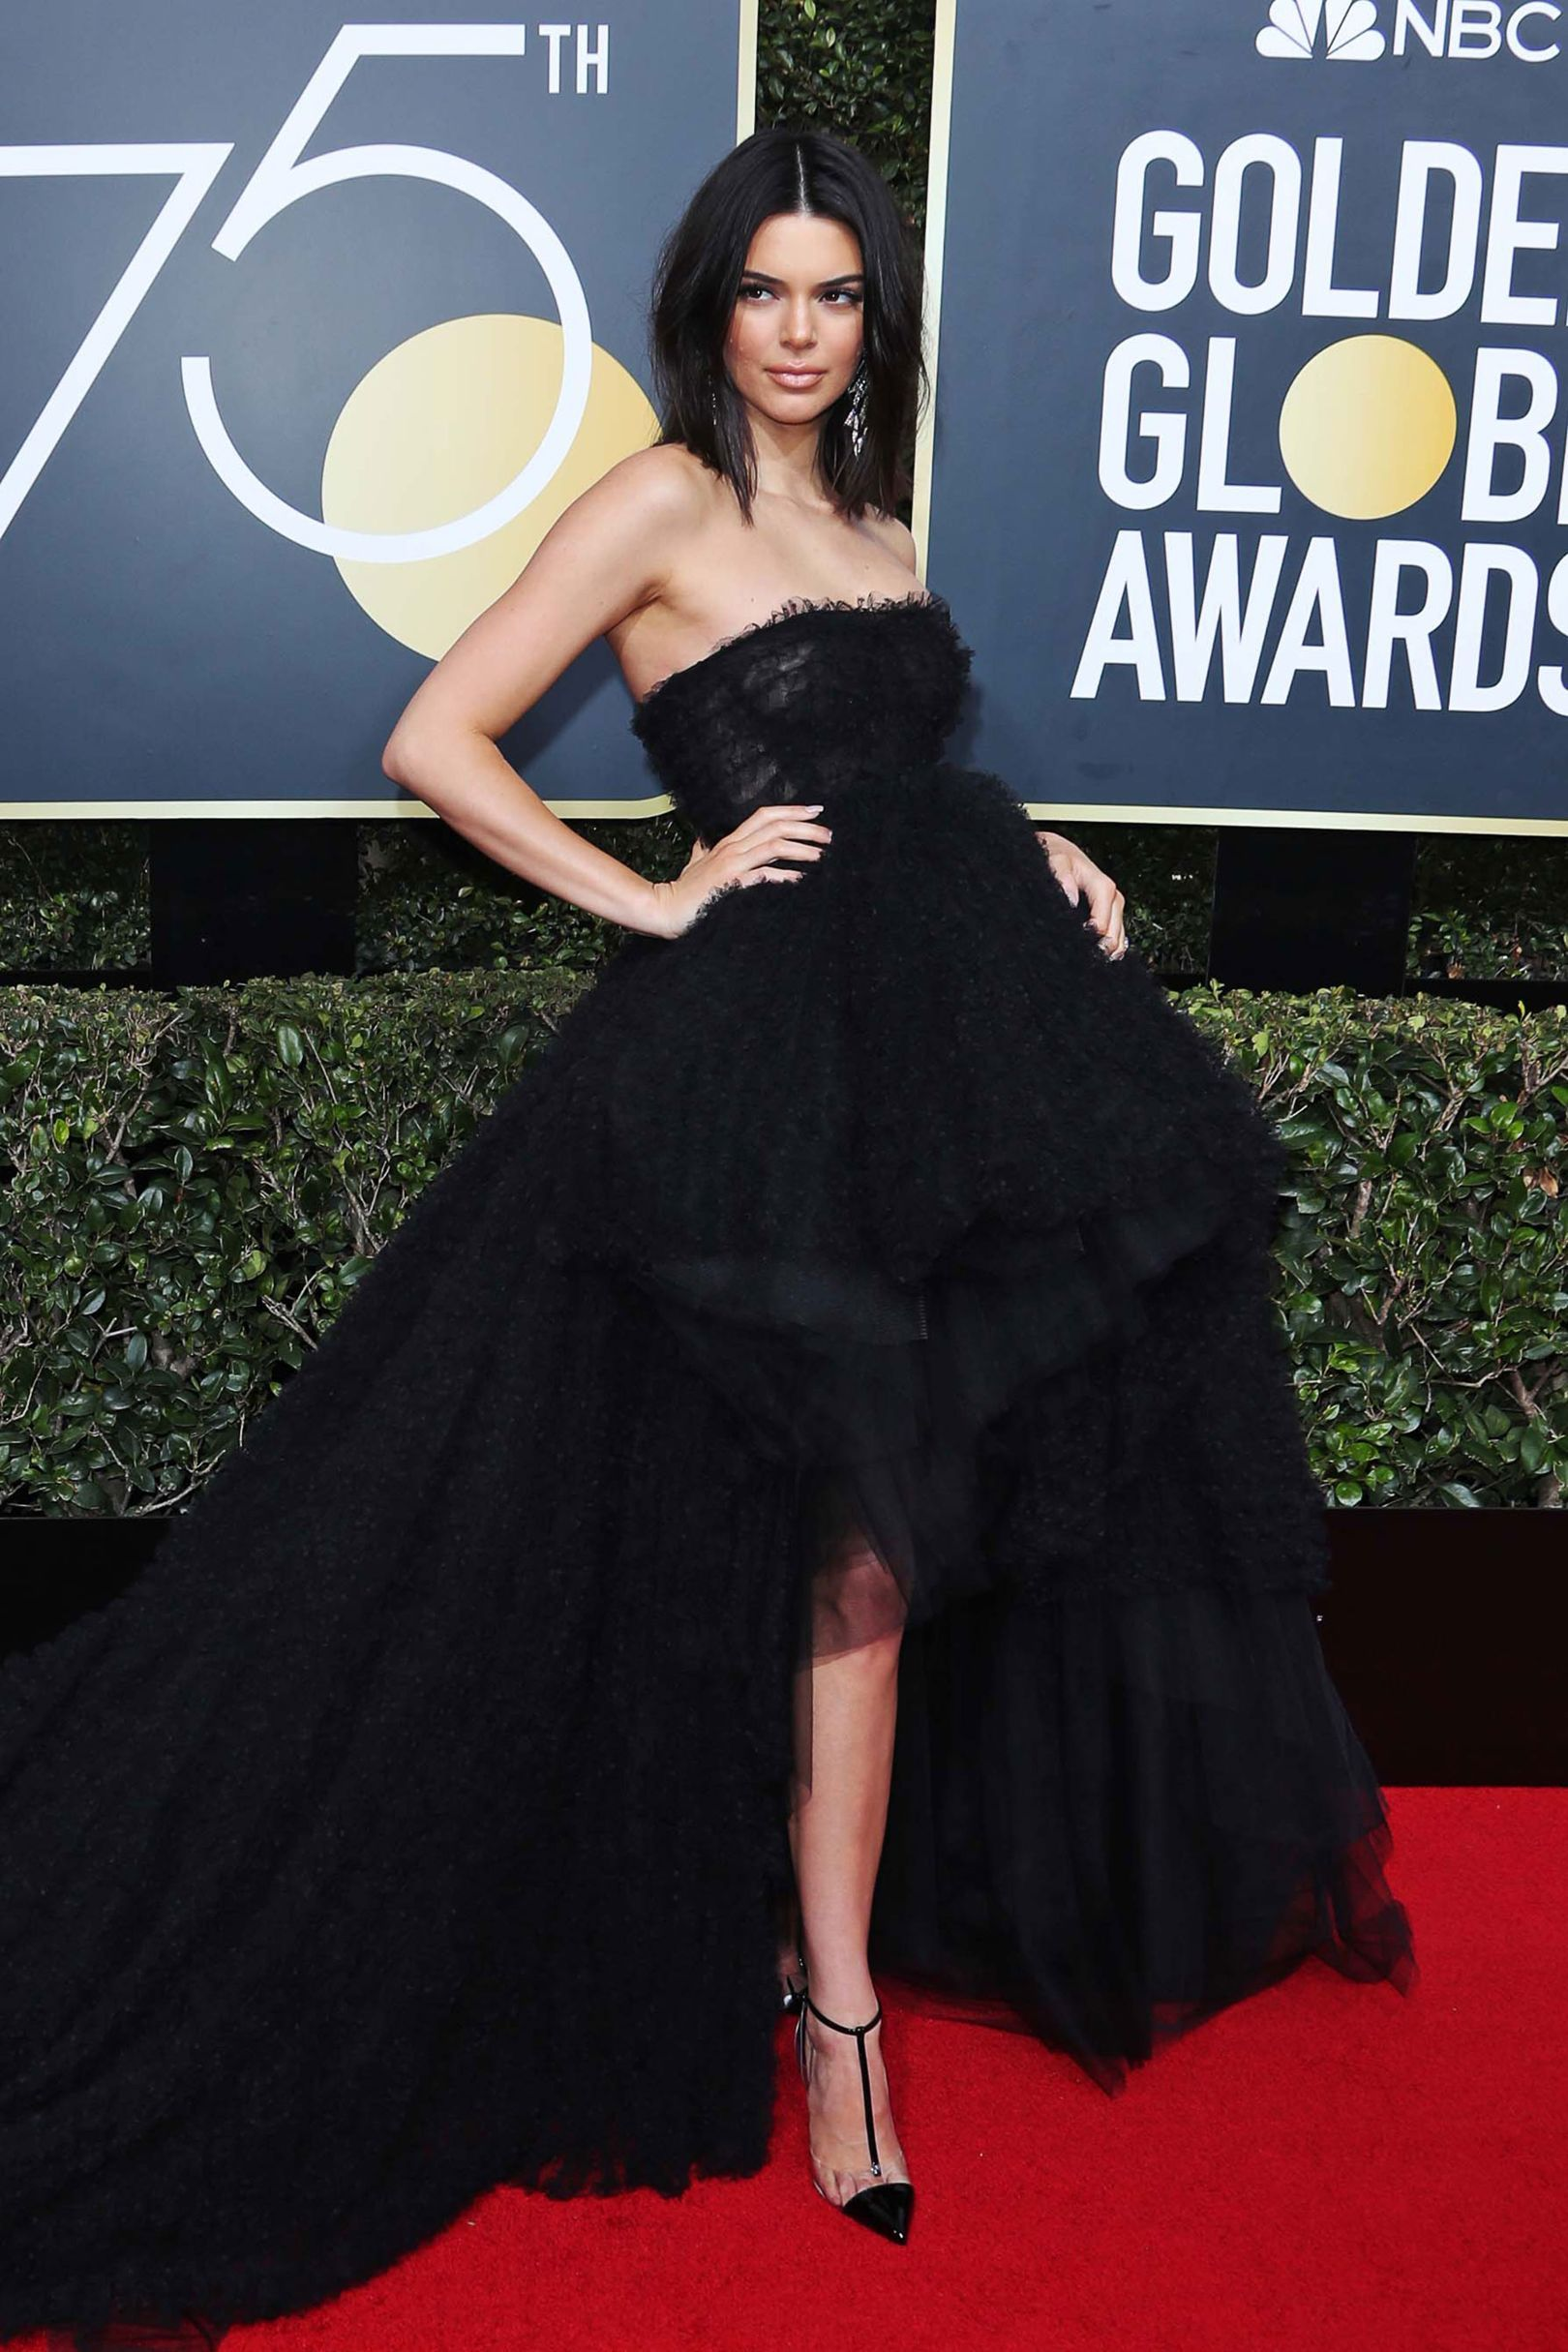 c7d65dfa4c2 Kendall Jenner in Giambattista Valli at 2018 Golden Globes. Kendall Jenner  in Giambattista Valli at 2018 Golden Globes Oscar Dresses